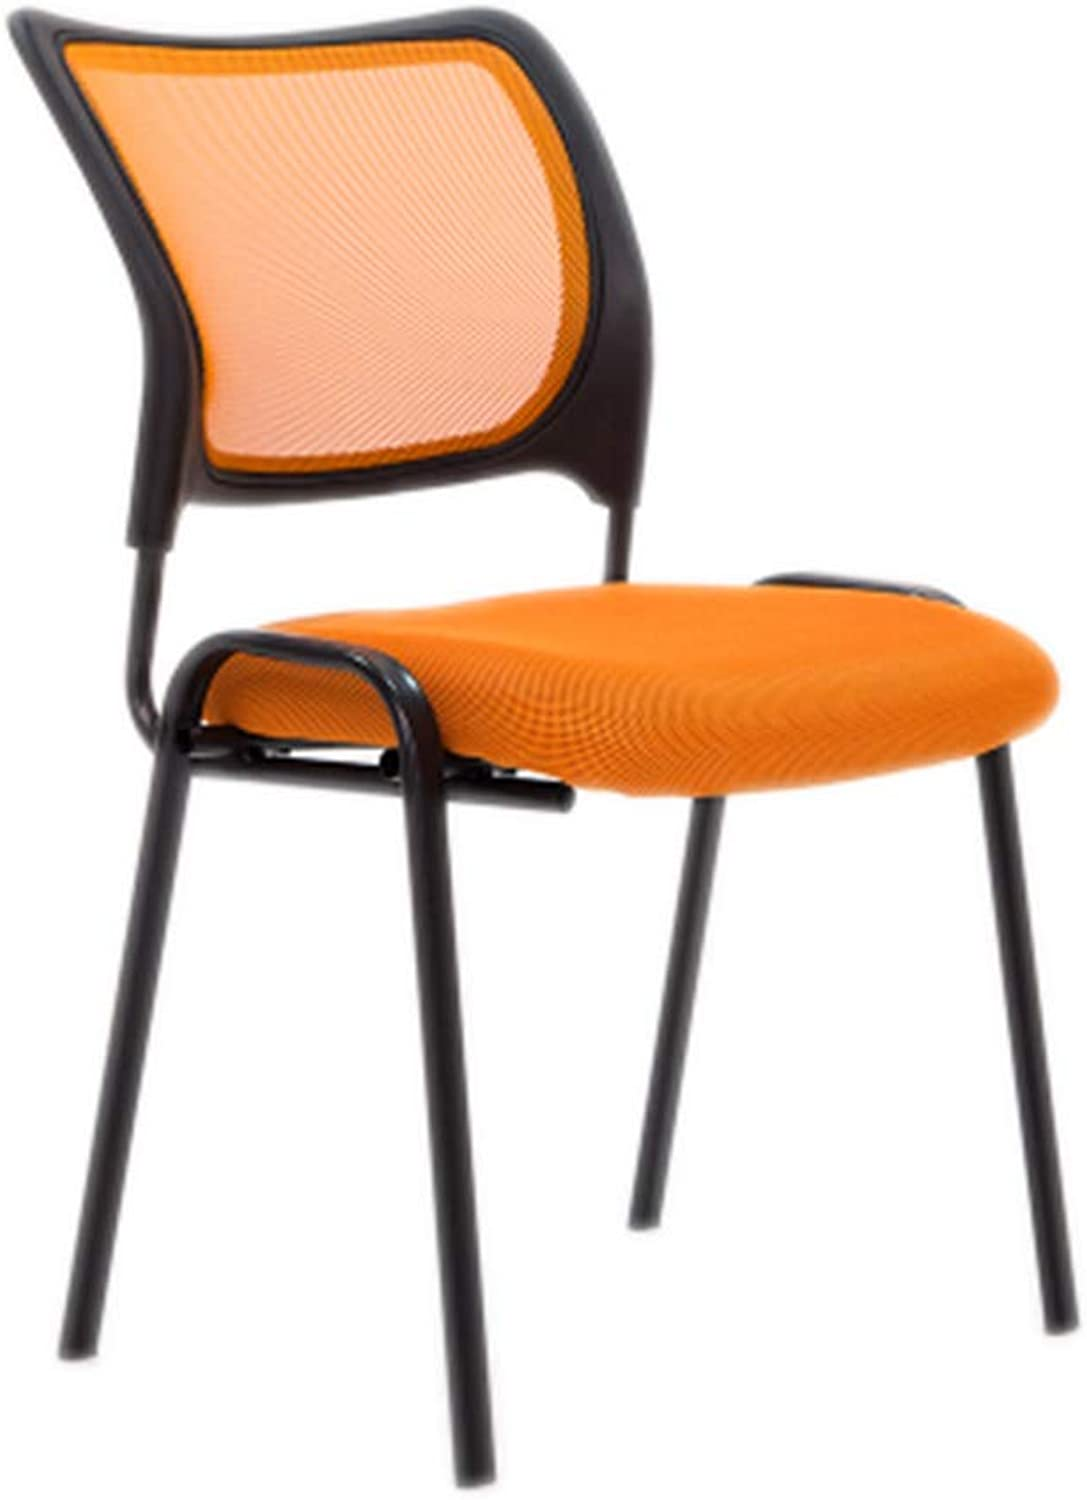 Office Chair, Staff Chair Chairs Computer Chair Net Comfortable Breathable Soft Chair Home Chair Multifunctional Chair (color   orange)